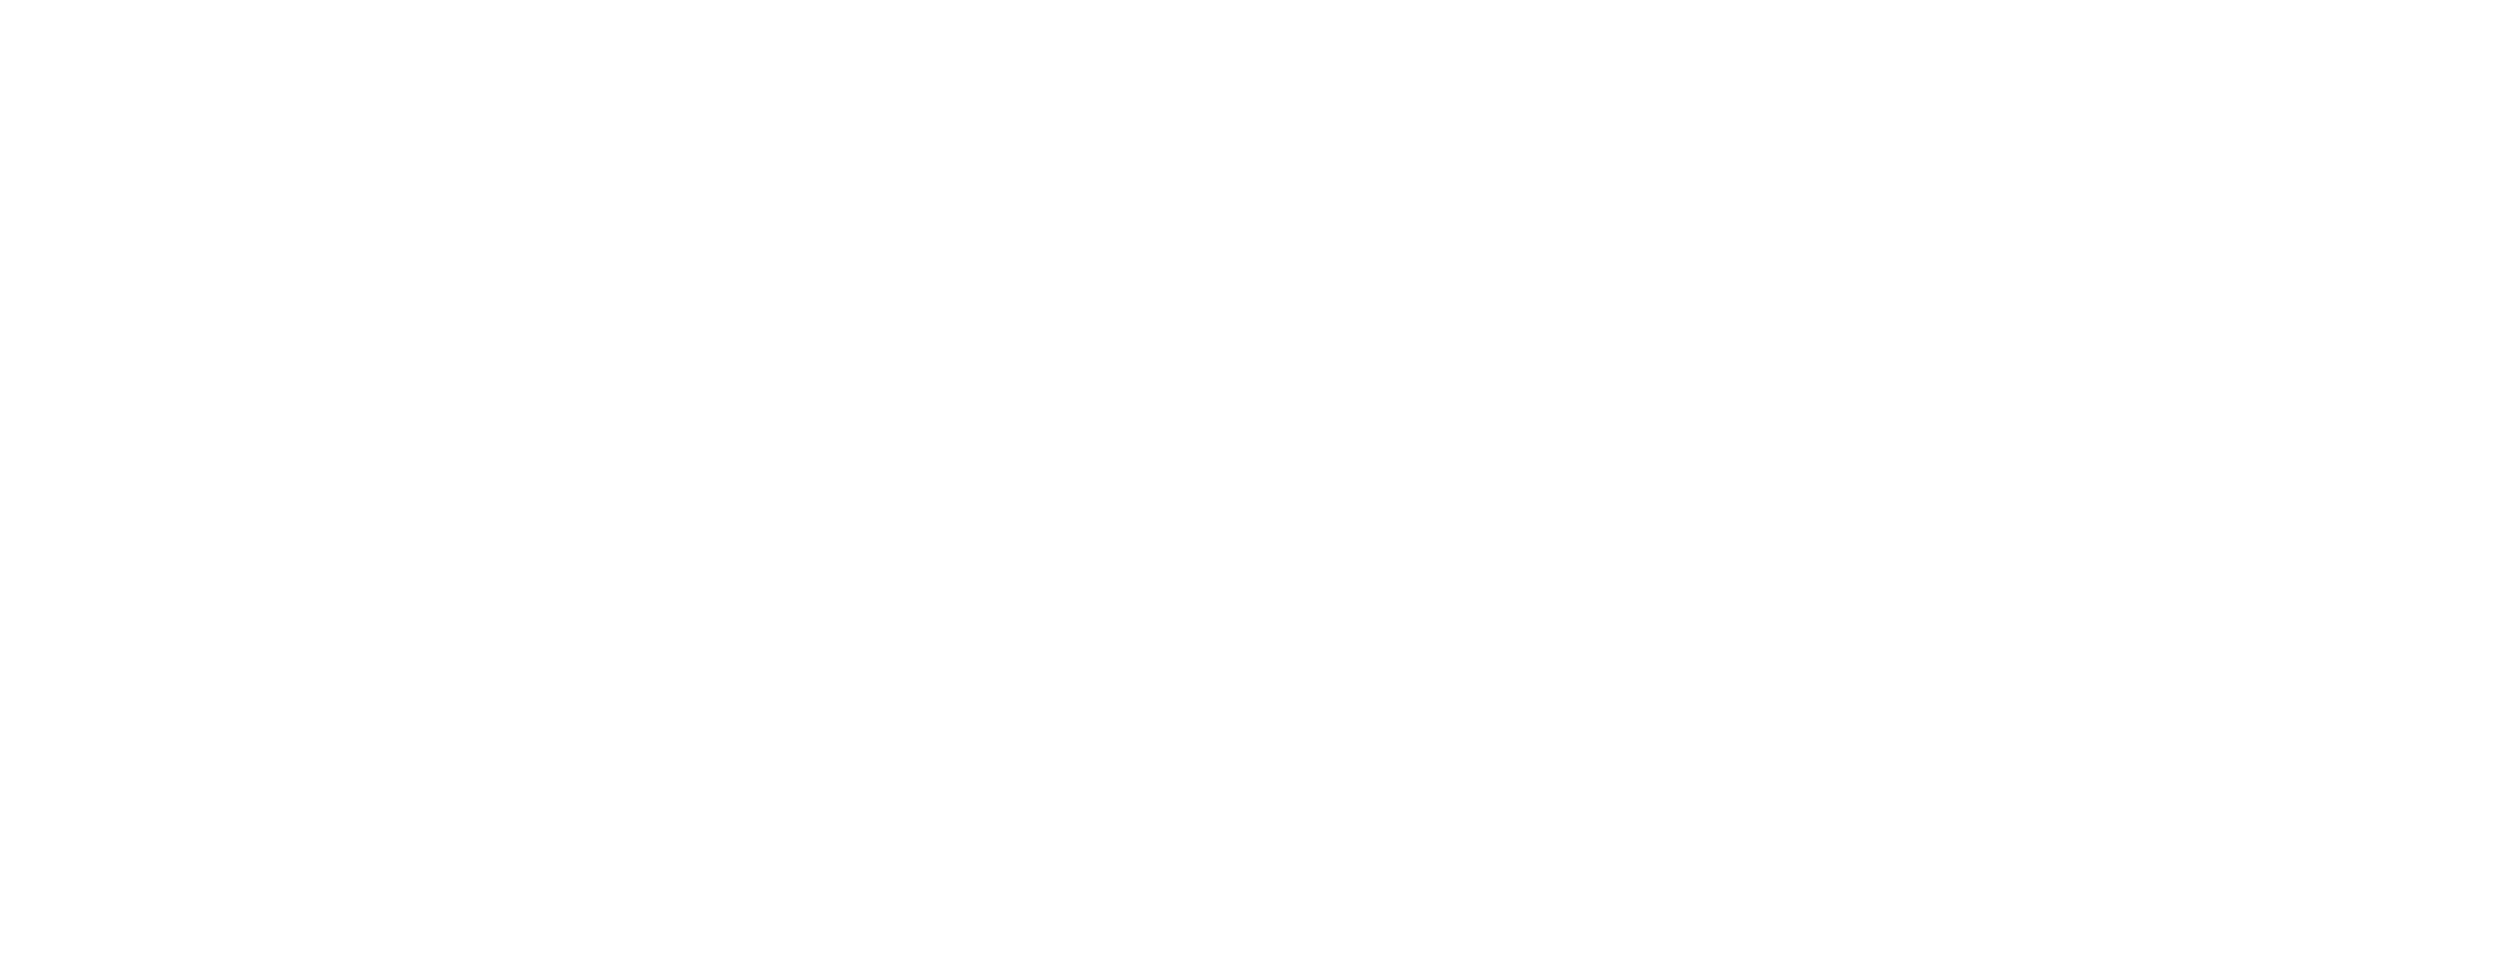 TO Web Assets_faber.png